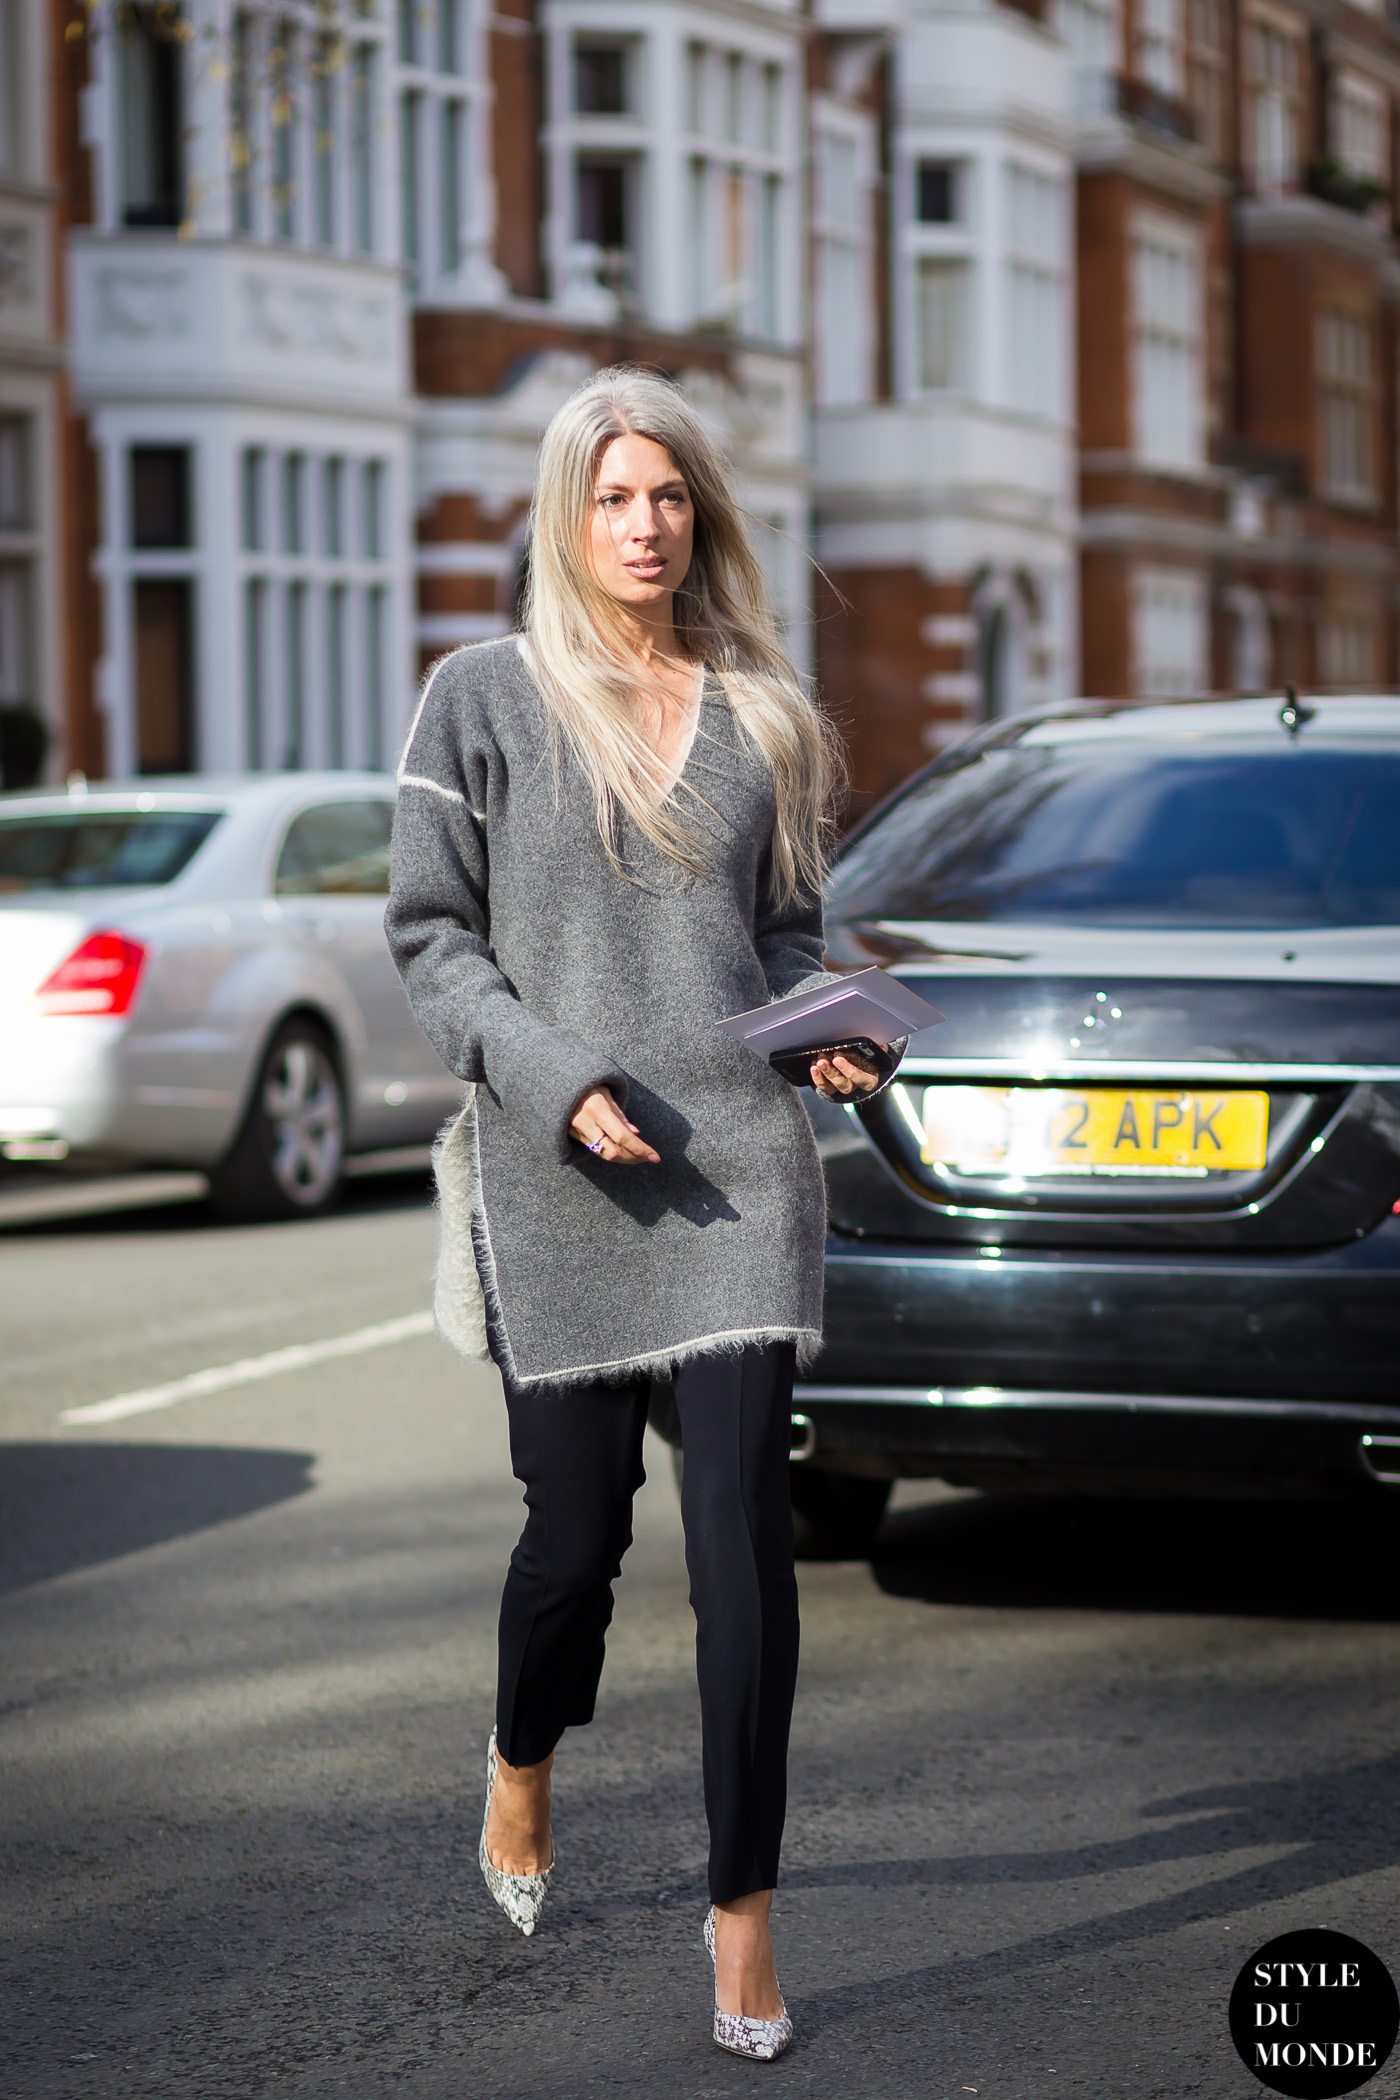 London Fashion Week Fw 2015 Street Style Sarah Harris